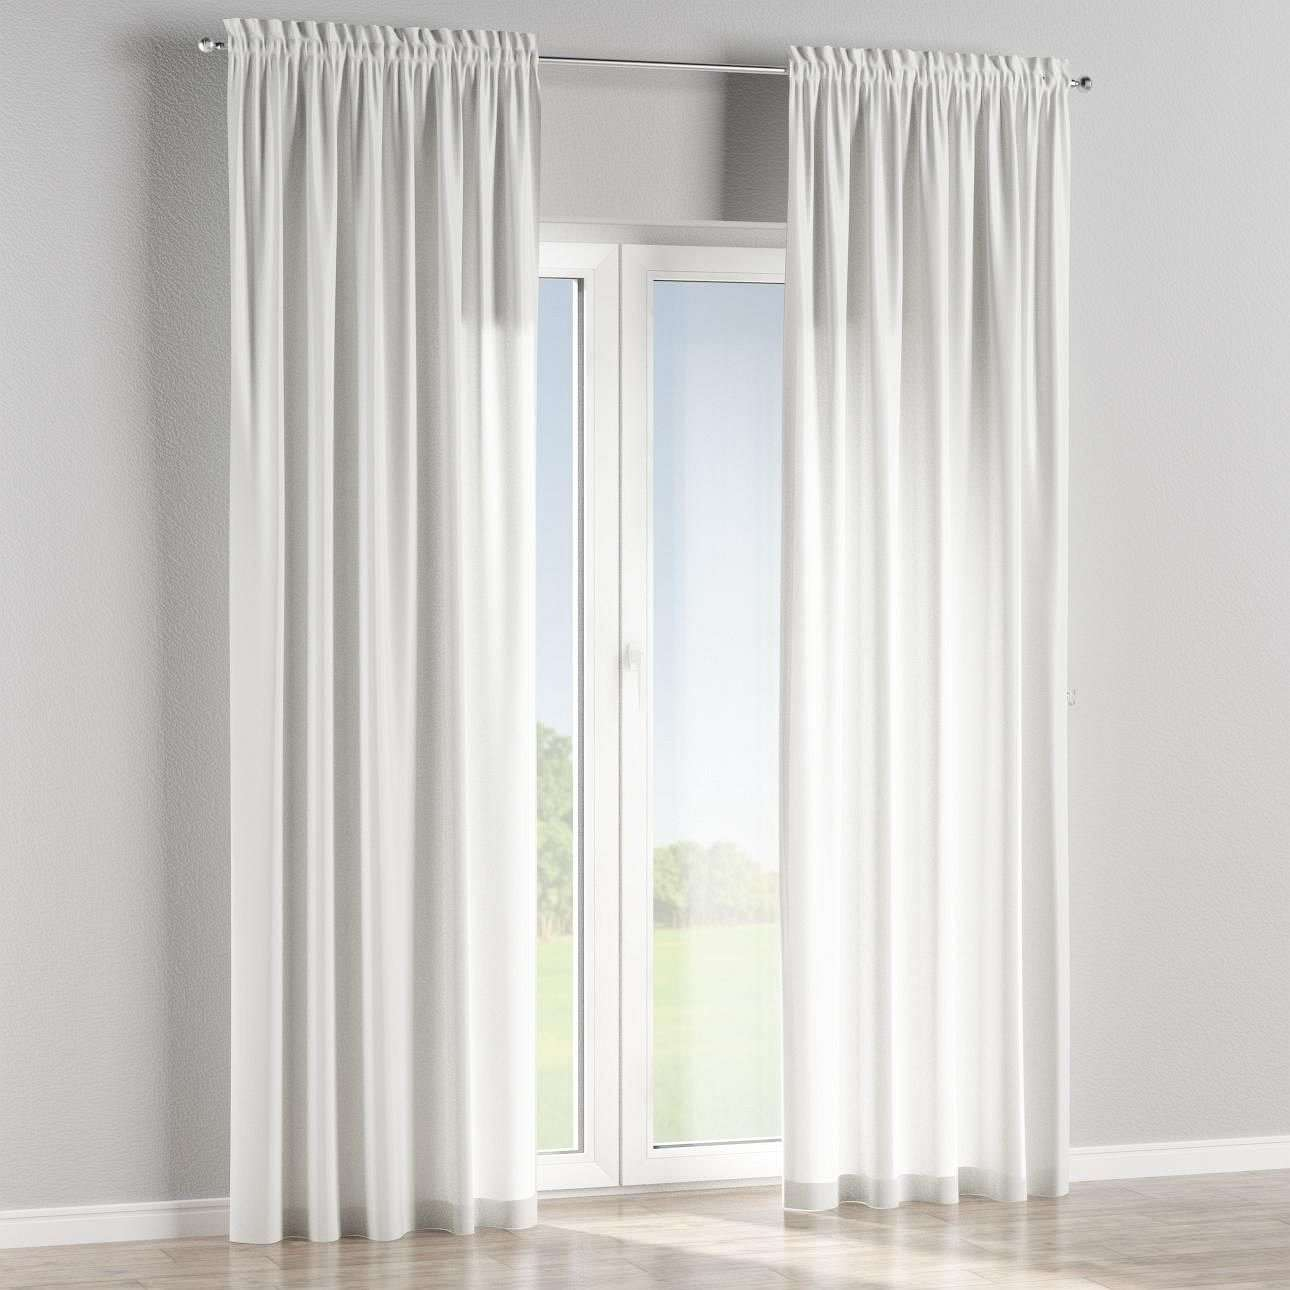 Slot and frill lined curtains in collection Mirella, fabric: 141-11